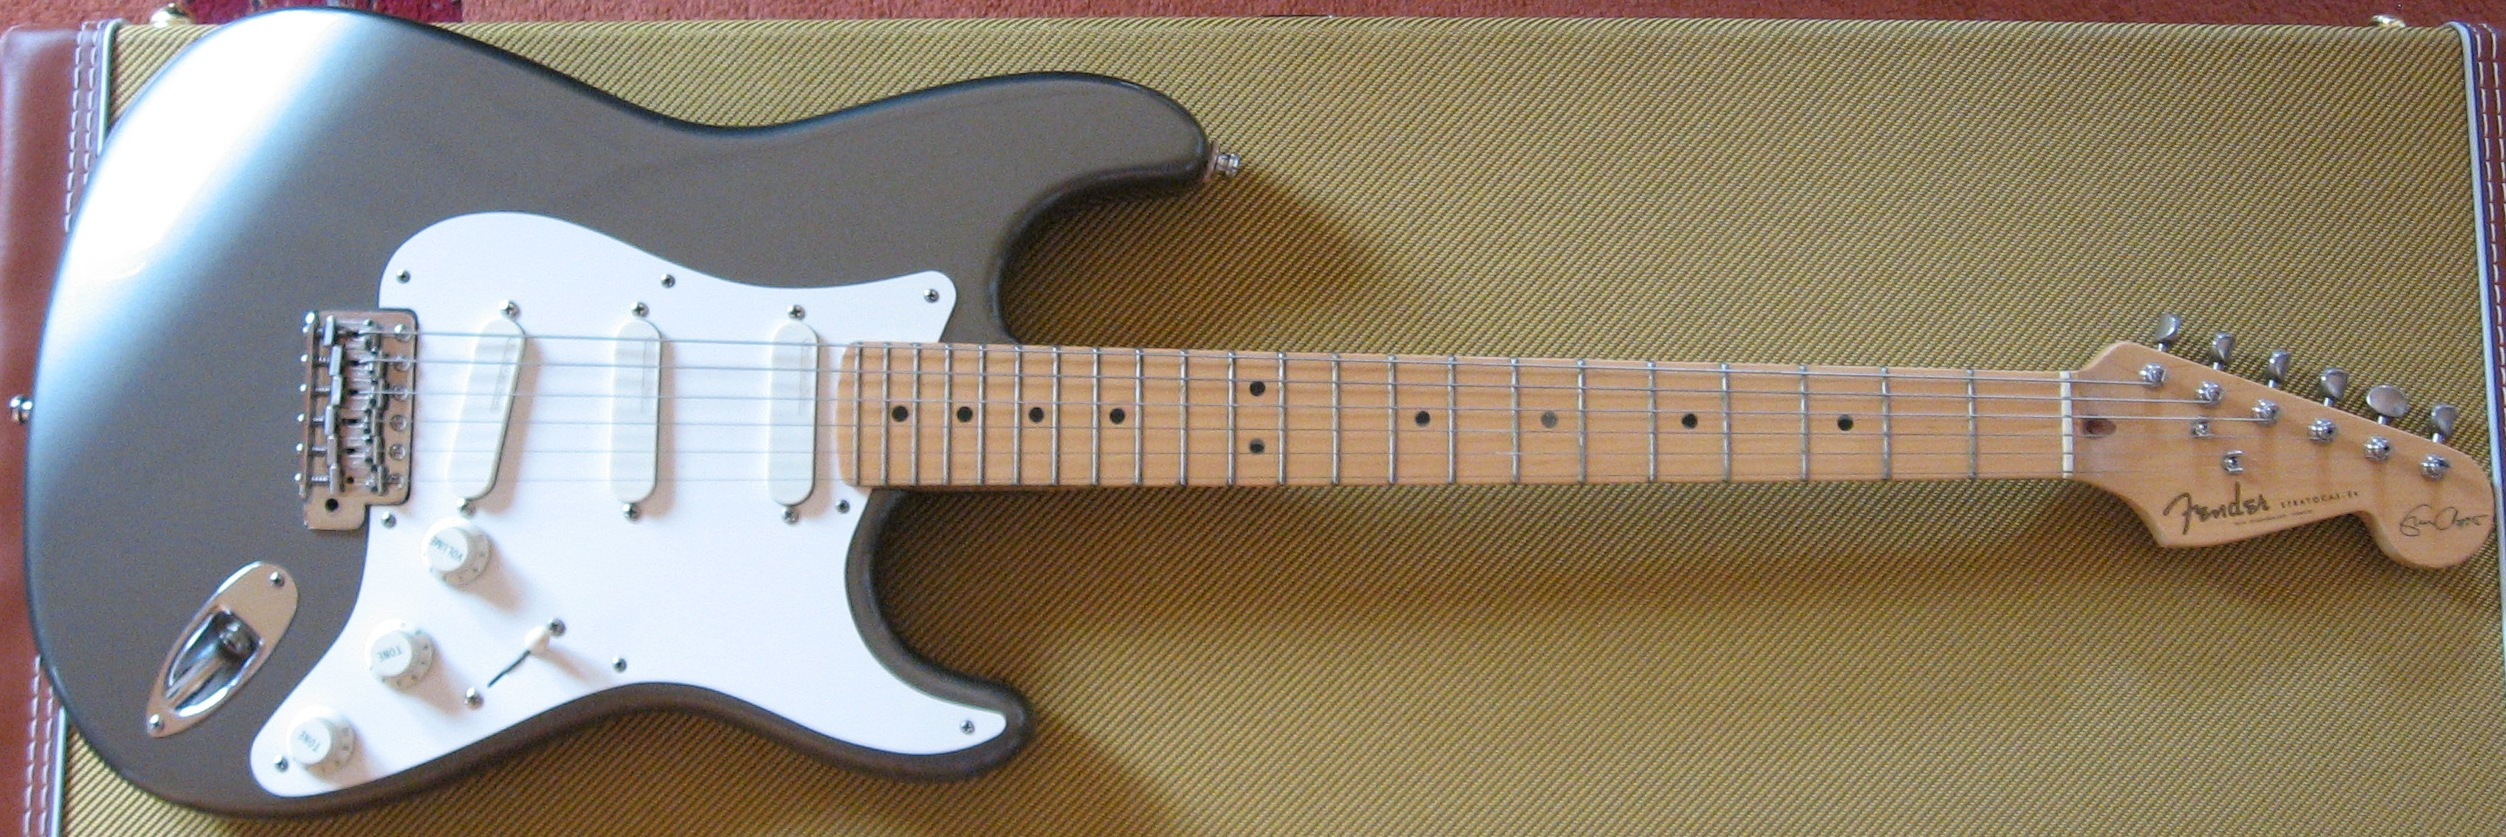 Eric Clapton stratocaster; 1996